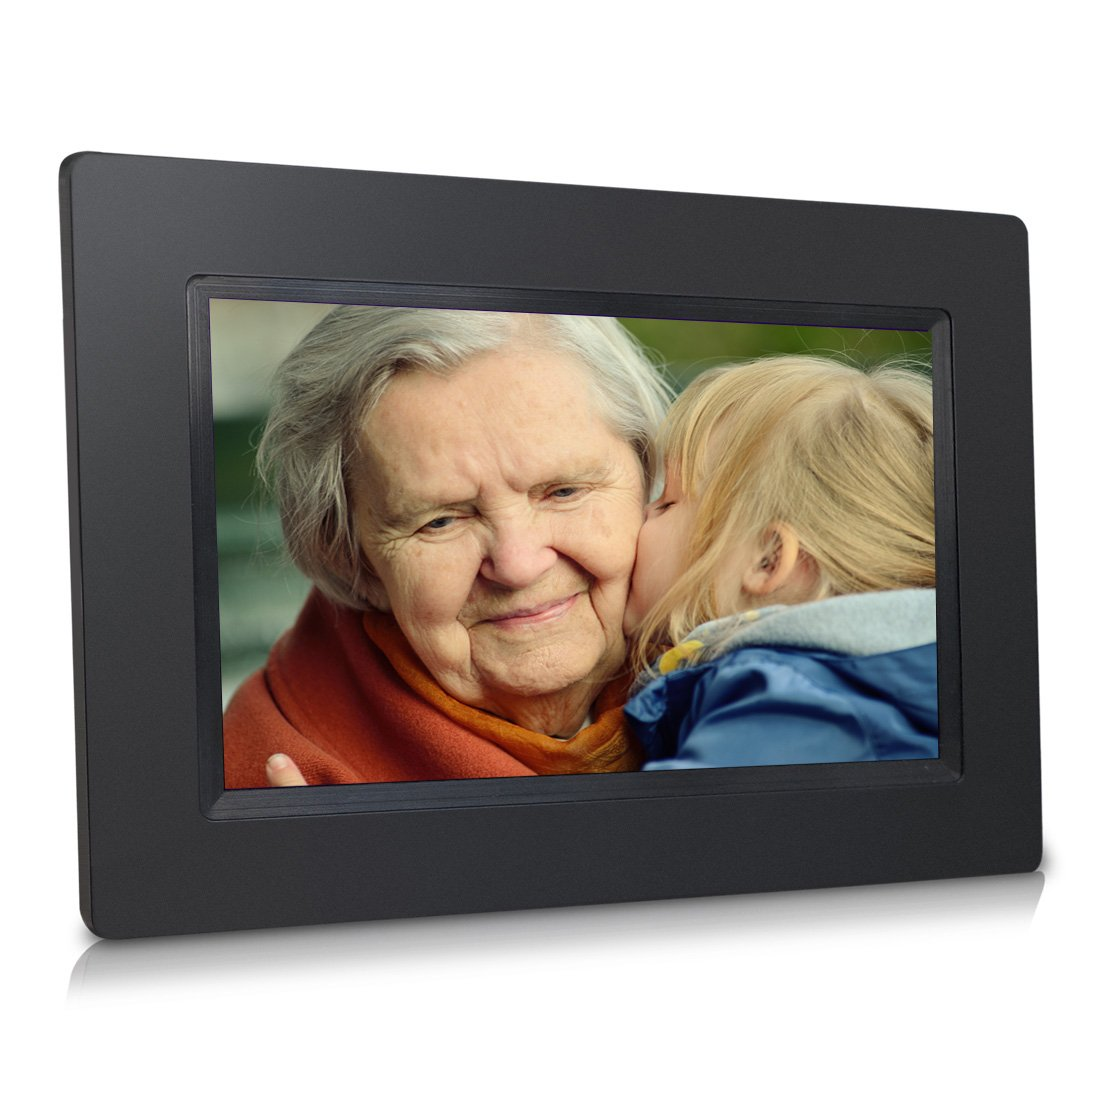 Amazon sungale 7 inch wifi cloud digital photo frame with amazon sungale 7 inch wifi cloud digital photo frame with touch panel free cloud storage high resolution 1024x600 ips screen black camera jeuxipadfo Gallery